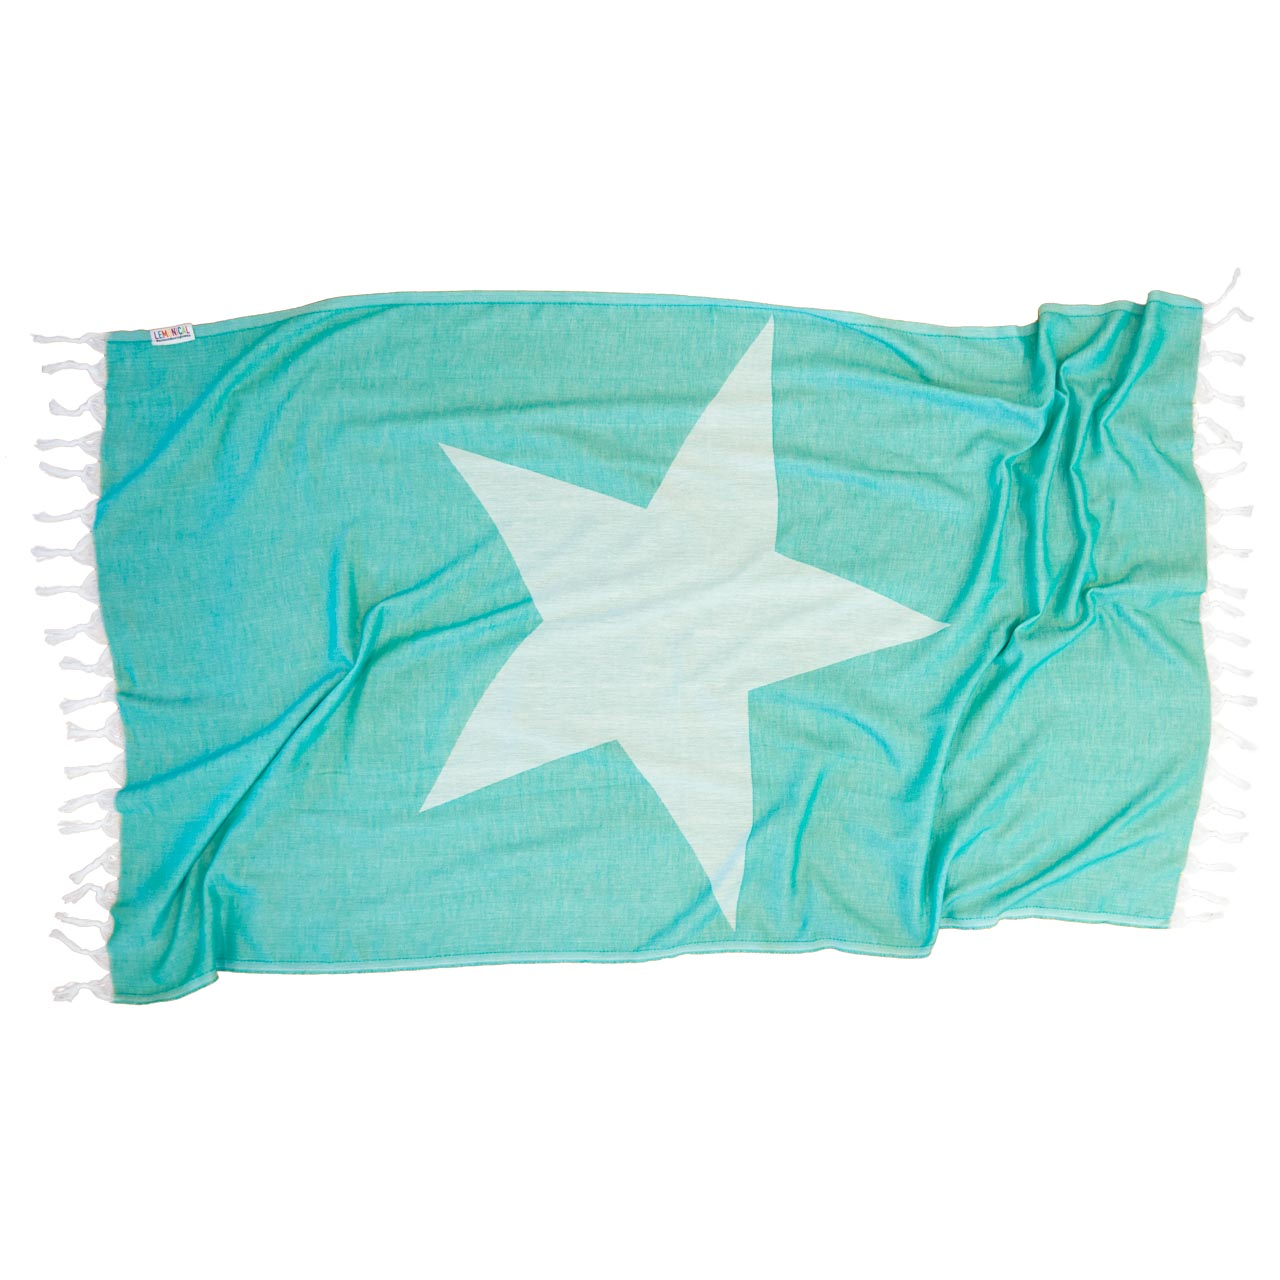 GREEN STARFISH BEACH TOWEL